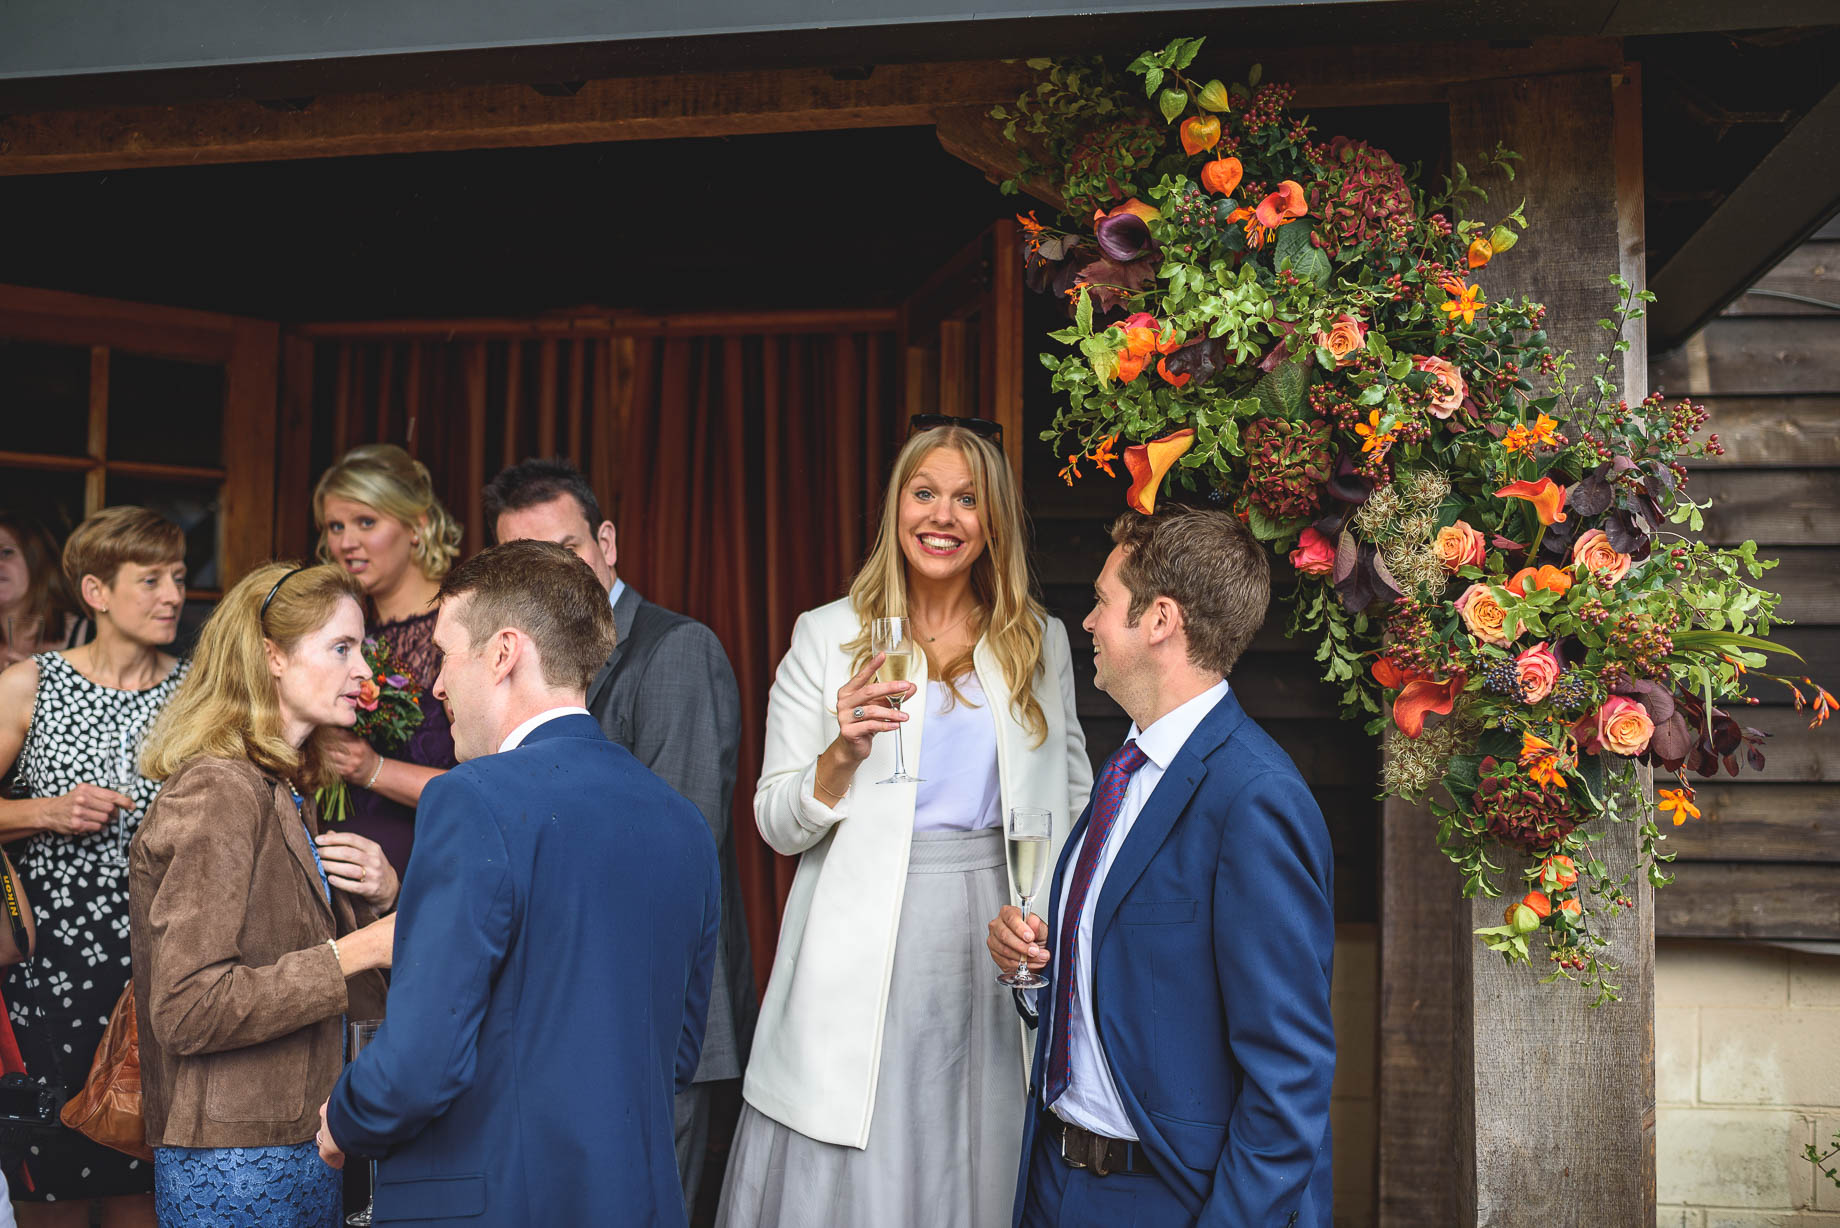 Gate Street Barn wedding photography - Guy Collier - Claire and Andy (91 of 192)